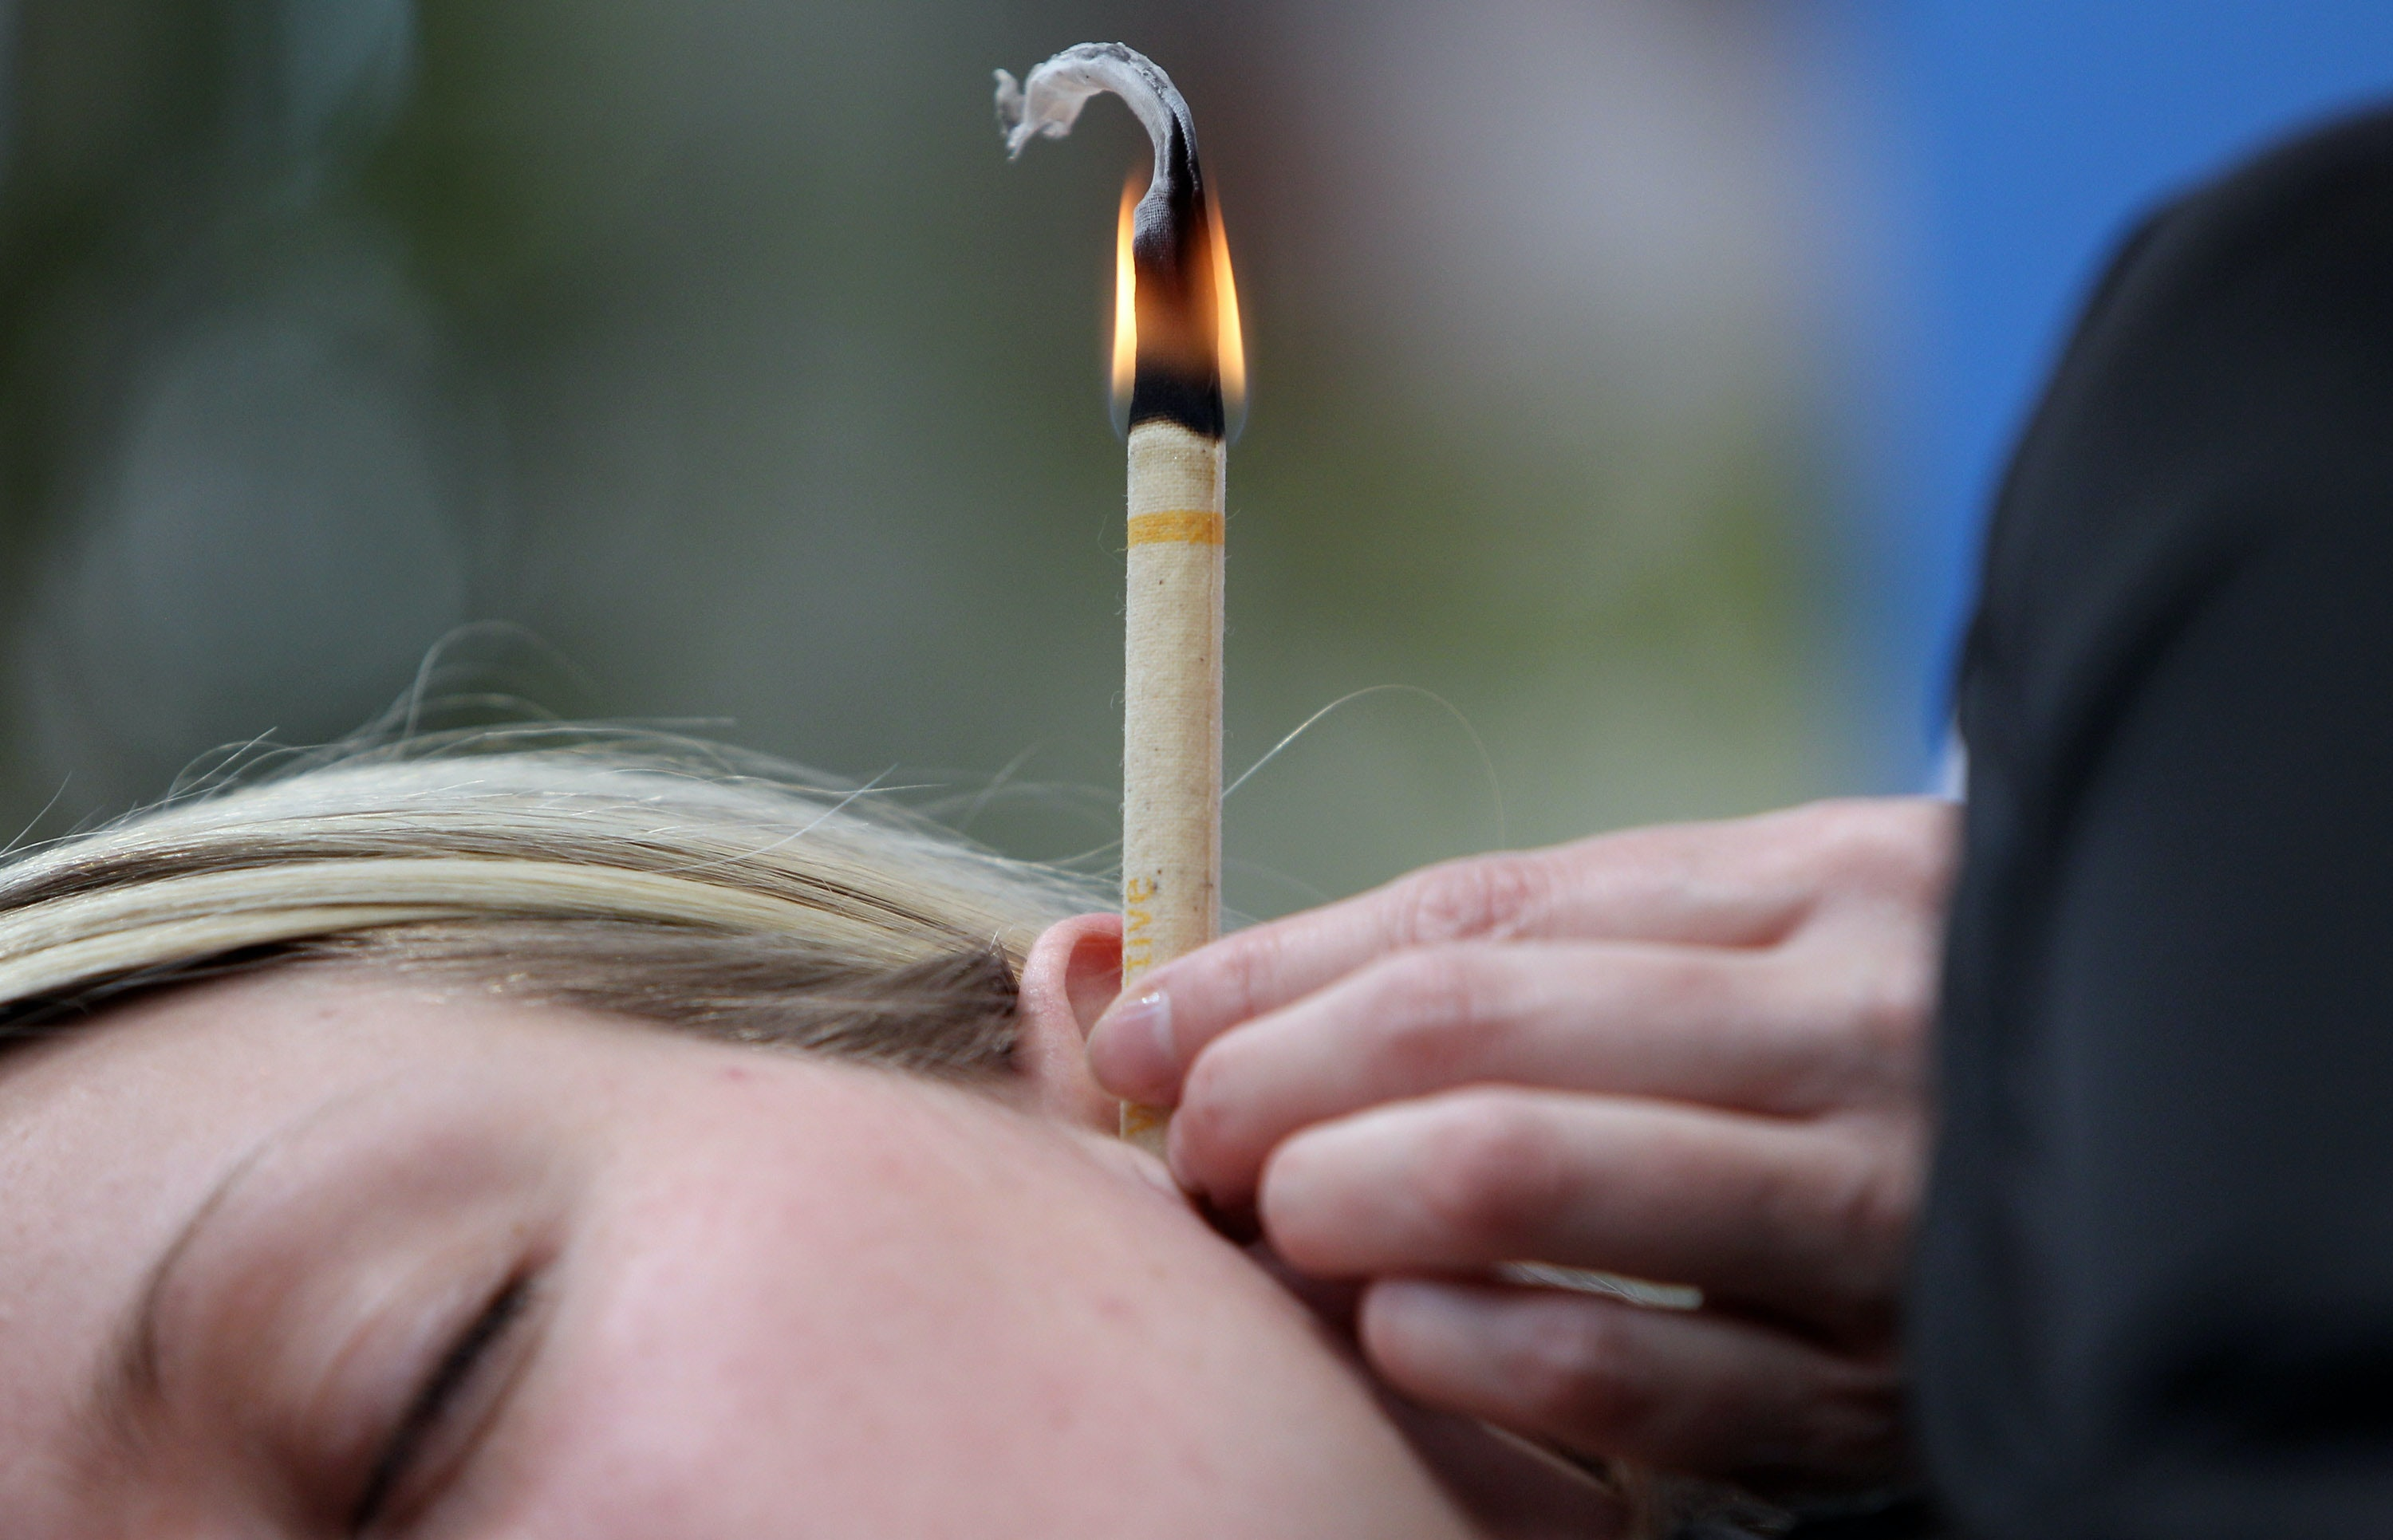 7 Things Your Ear Wax Can Tell You About Your Health